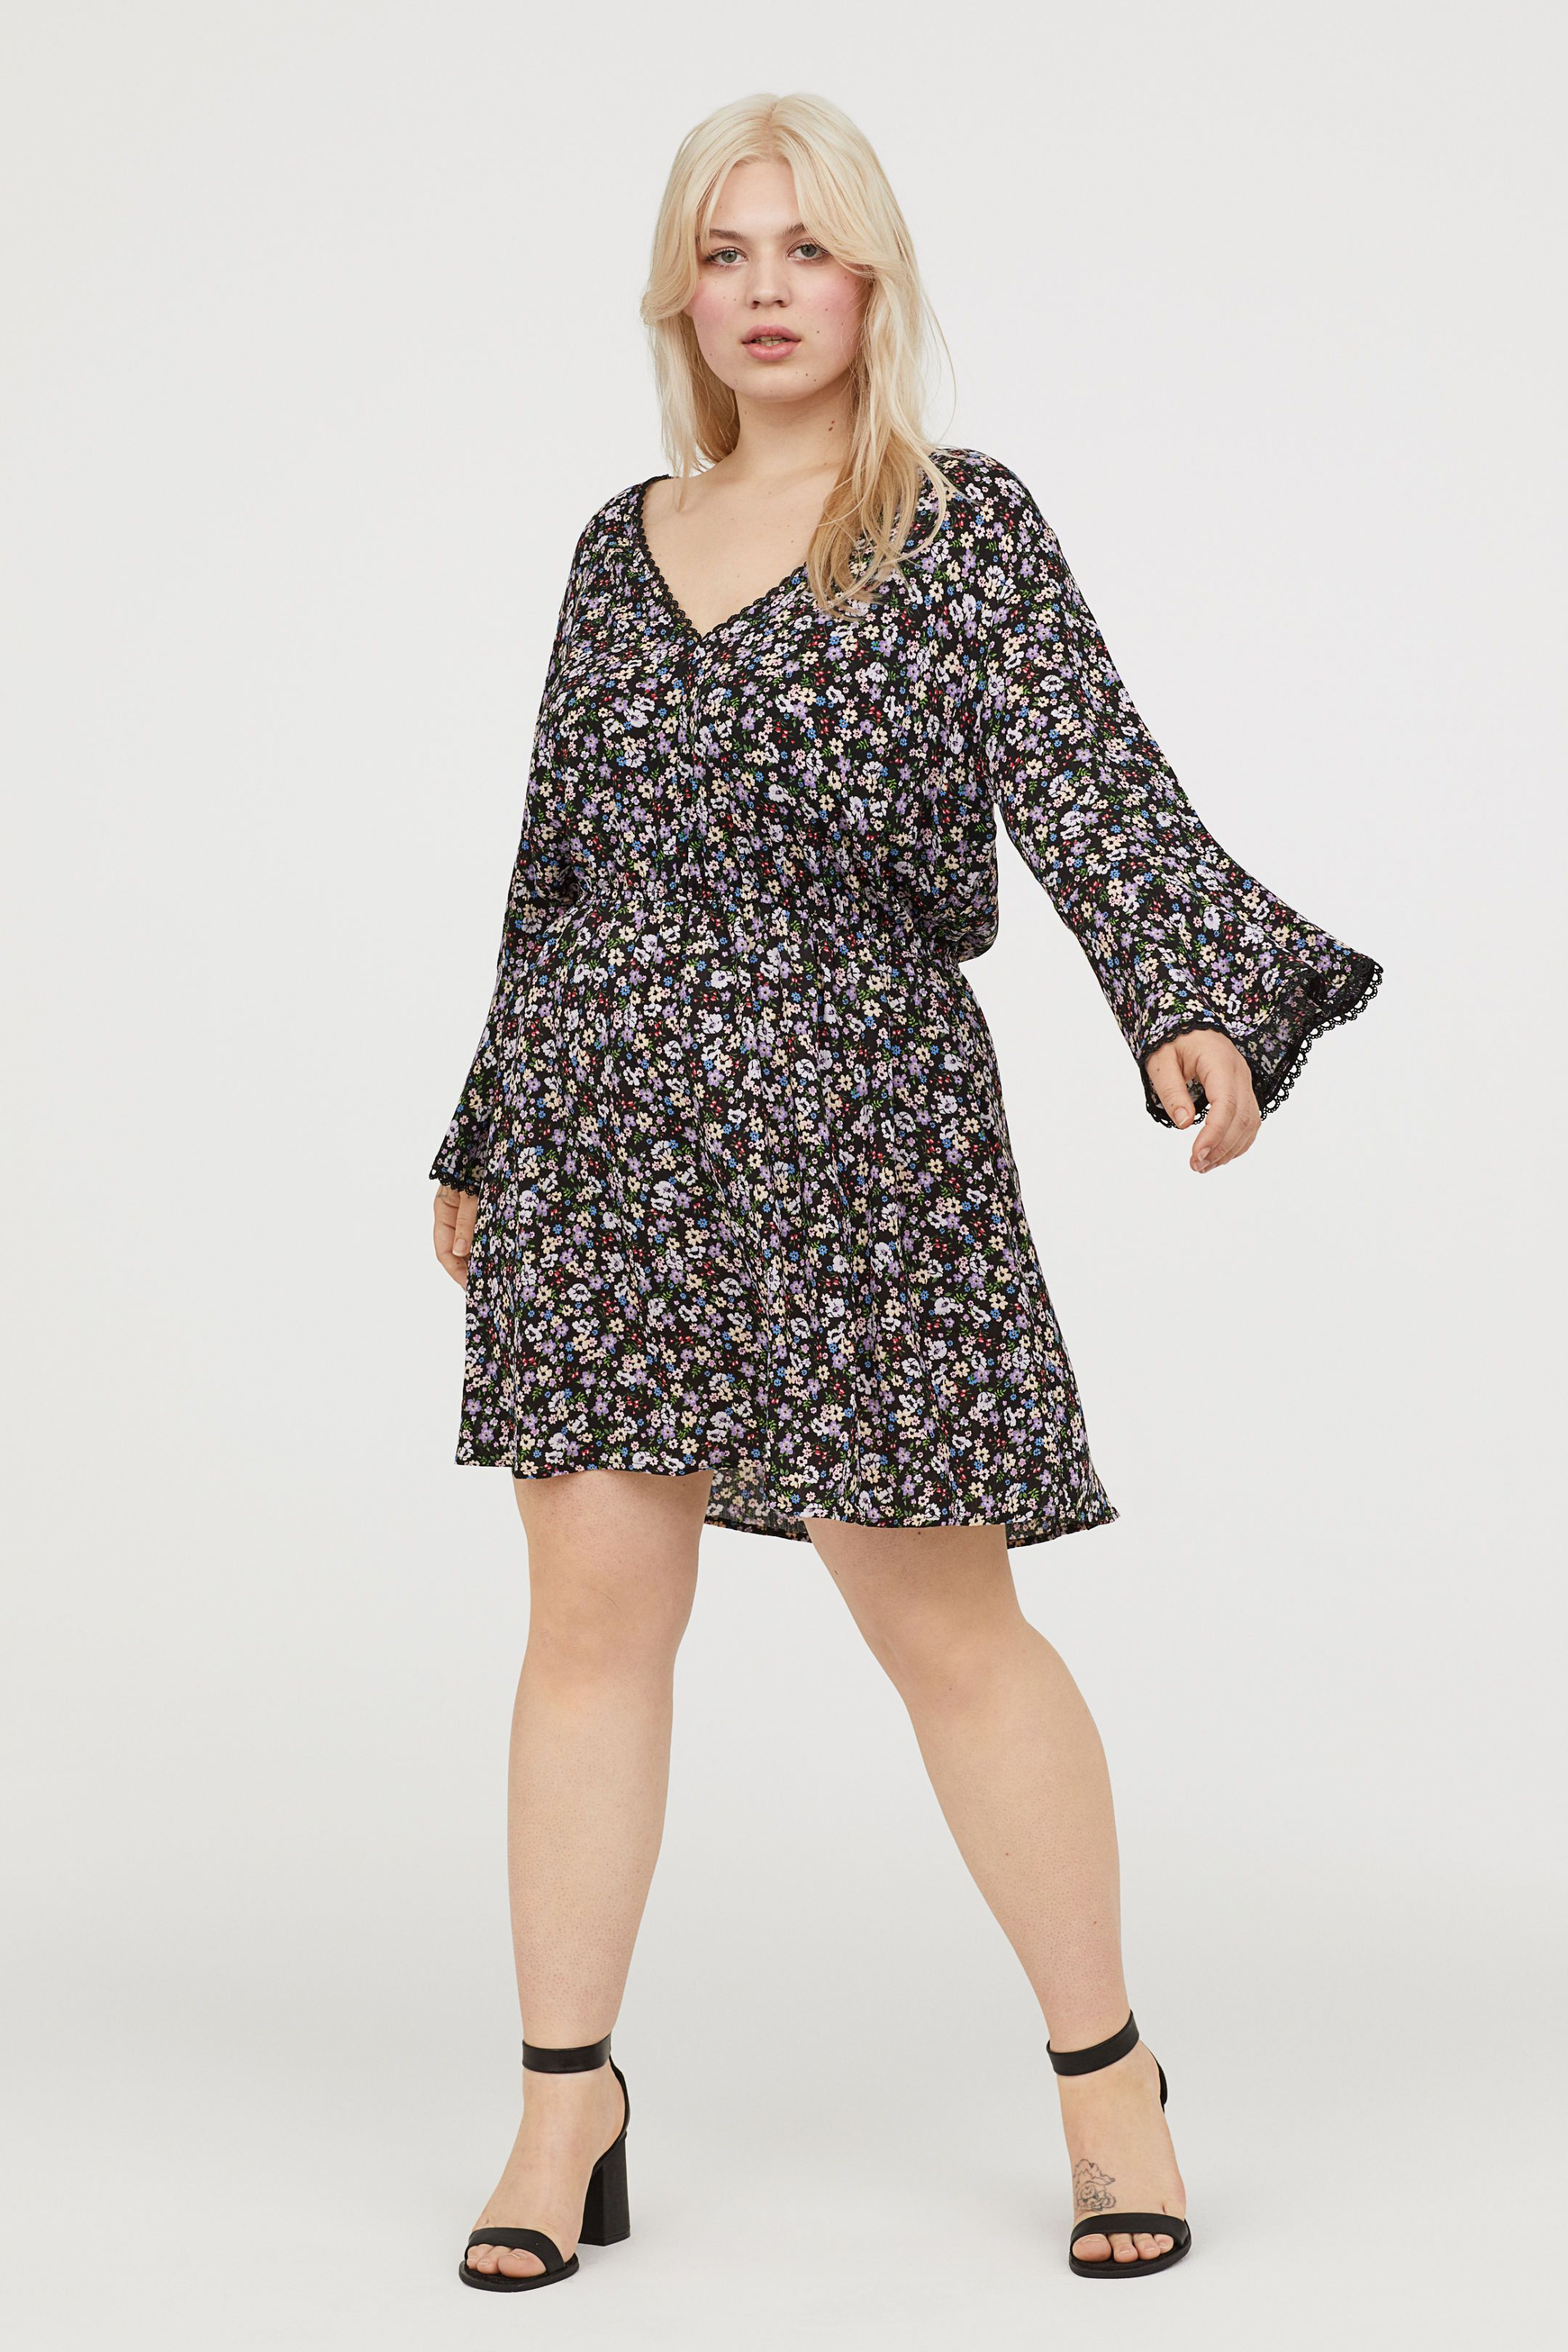 H&M Plus | Style | Dresses, Dress outfits, Plus size womens ...